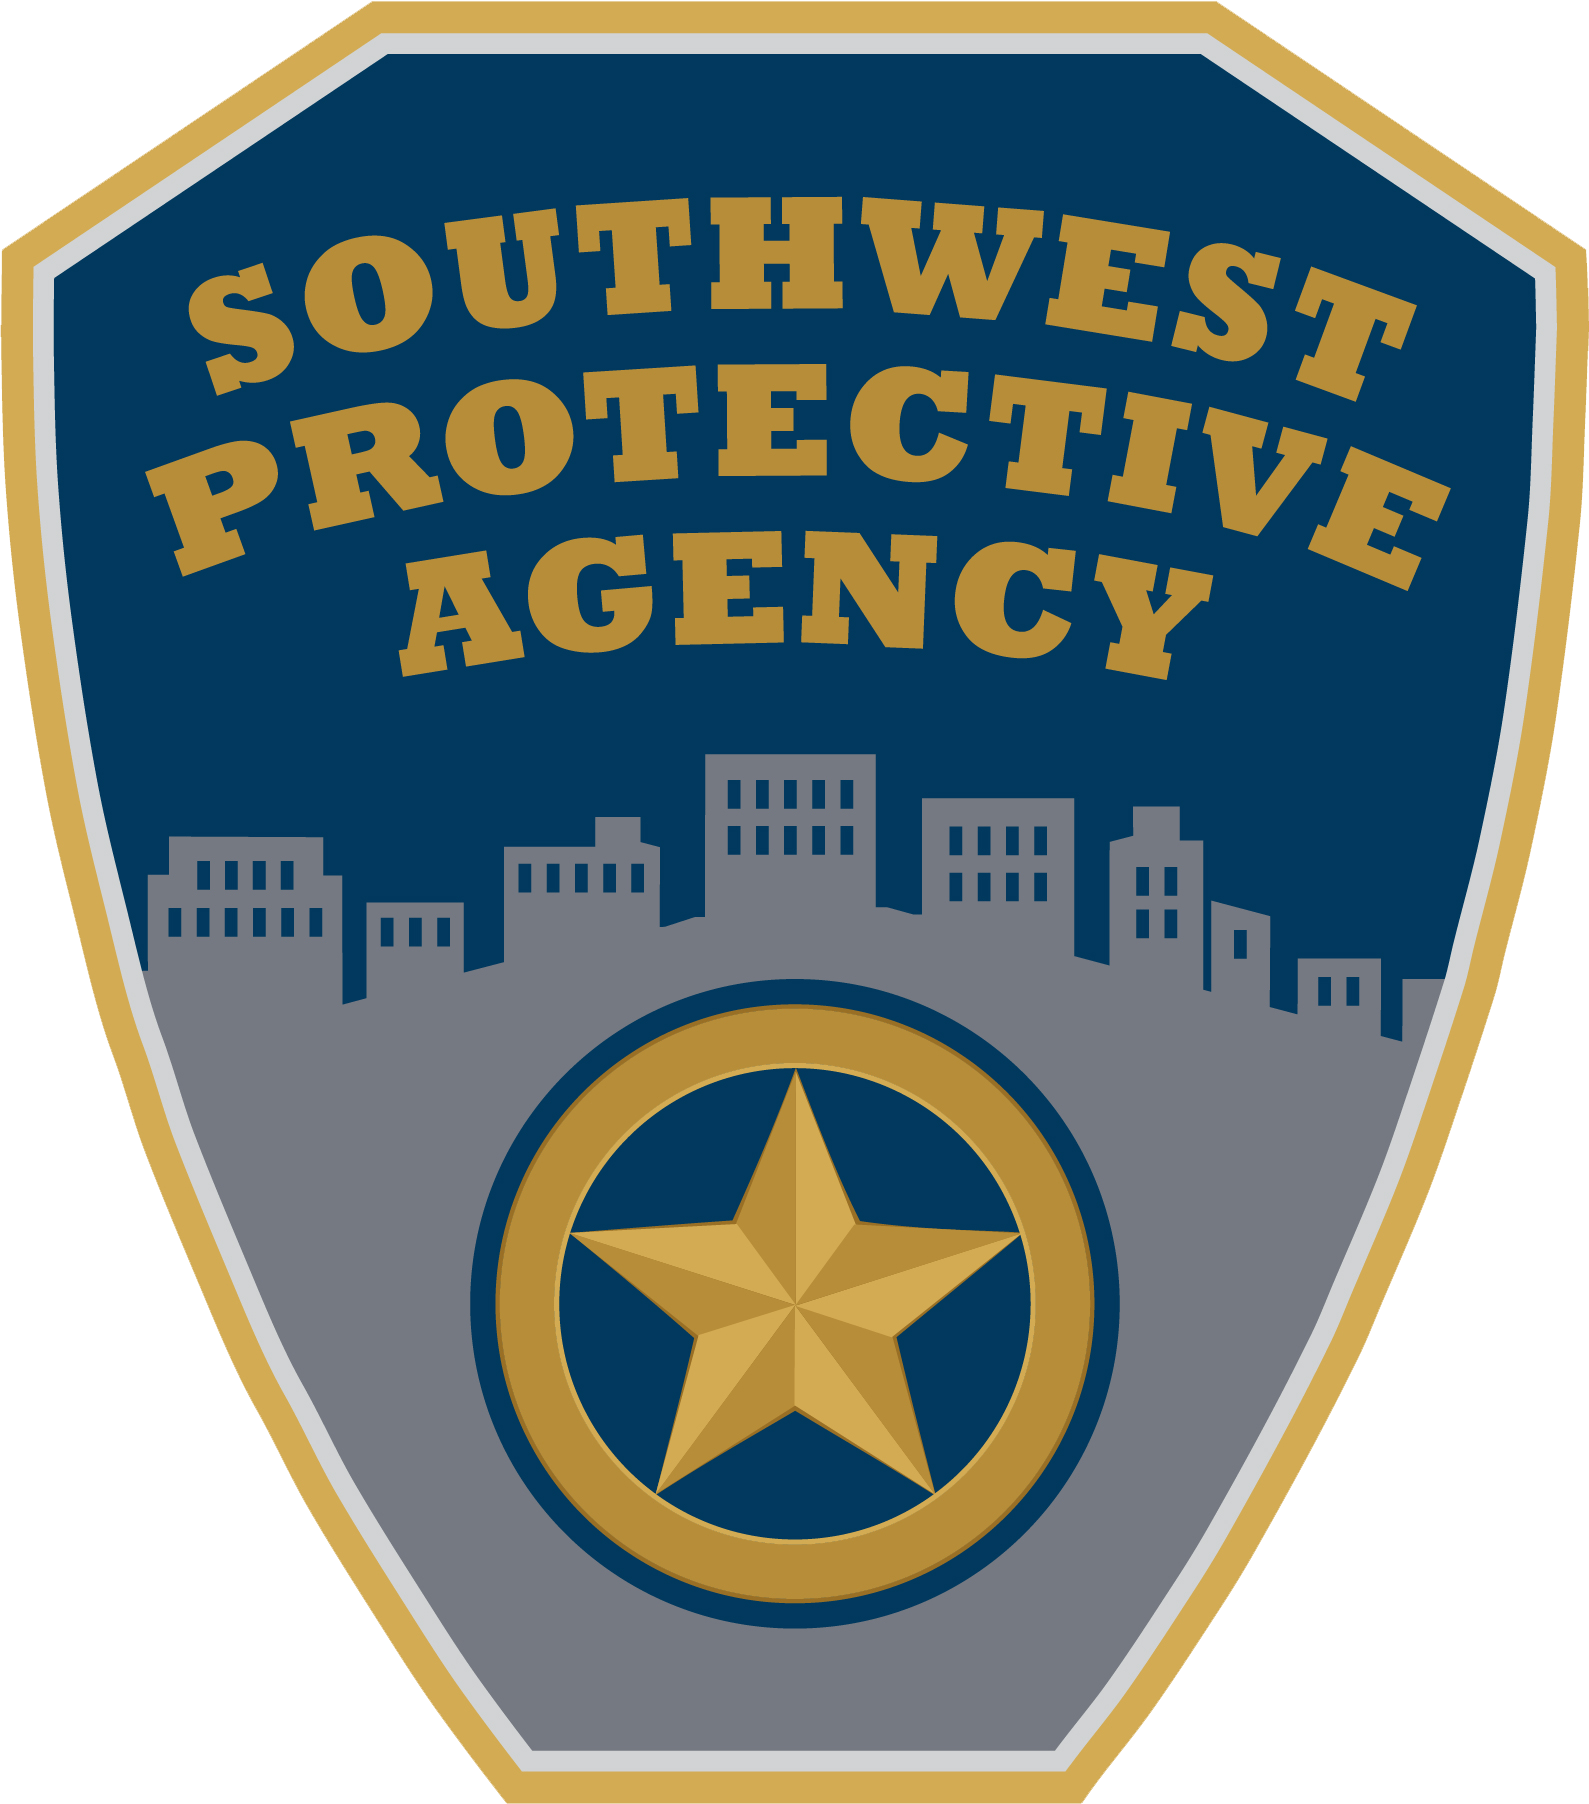 Southwest Protective